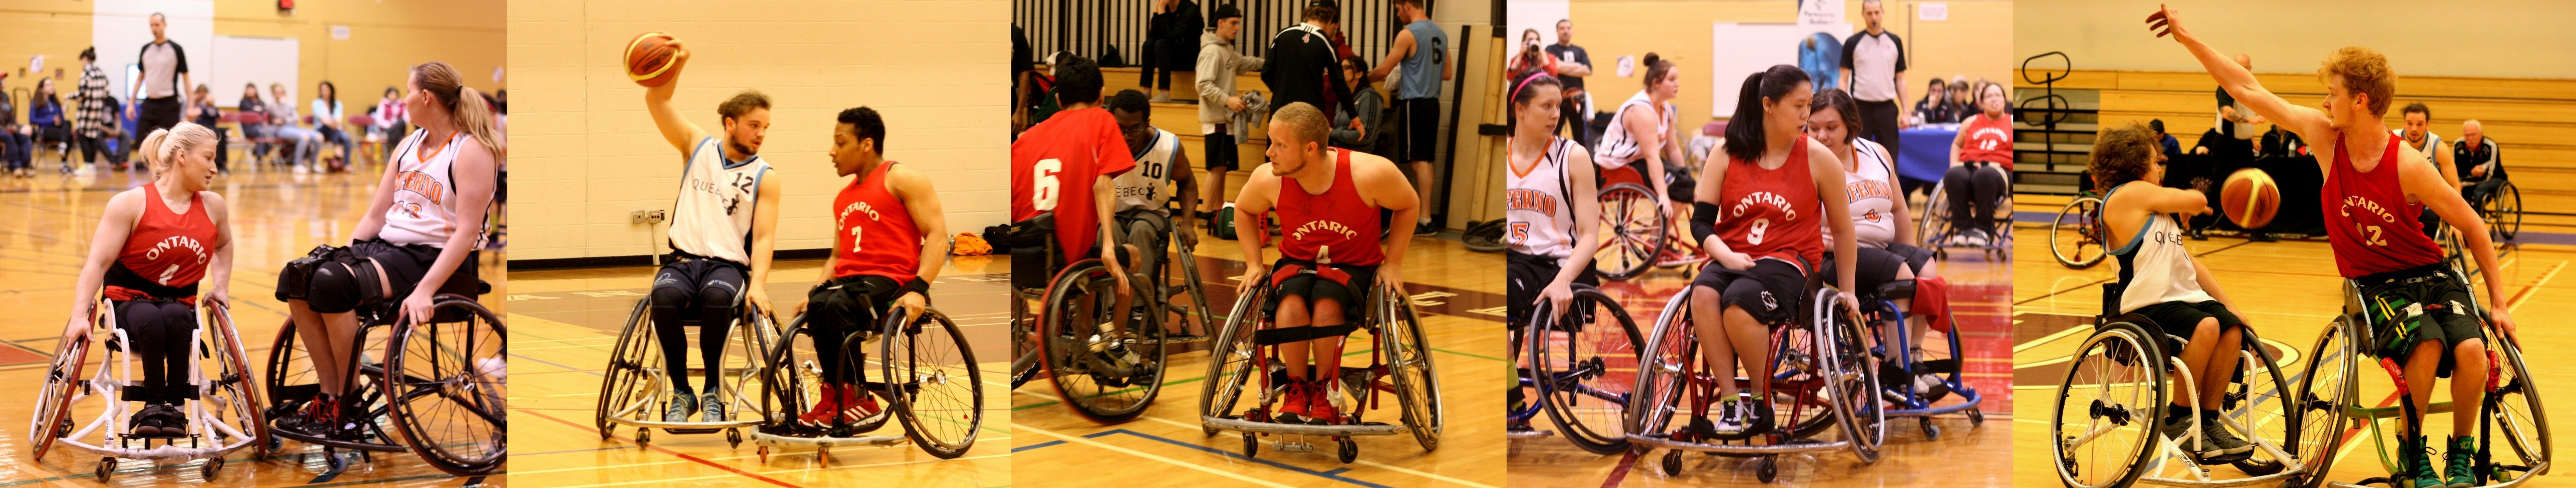 wheelchair basketball athletes to participate in 2017 parasport